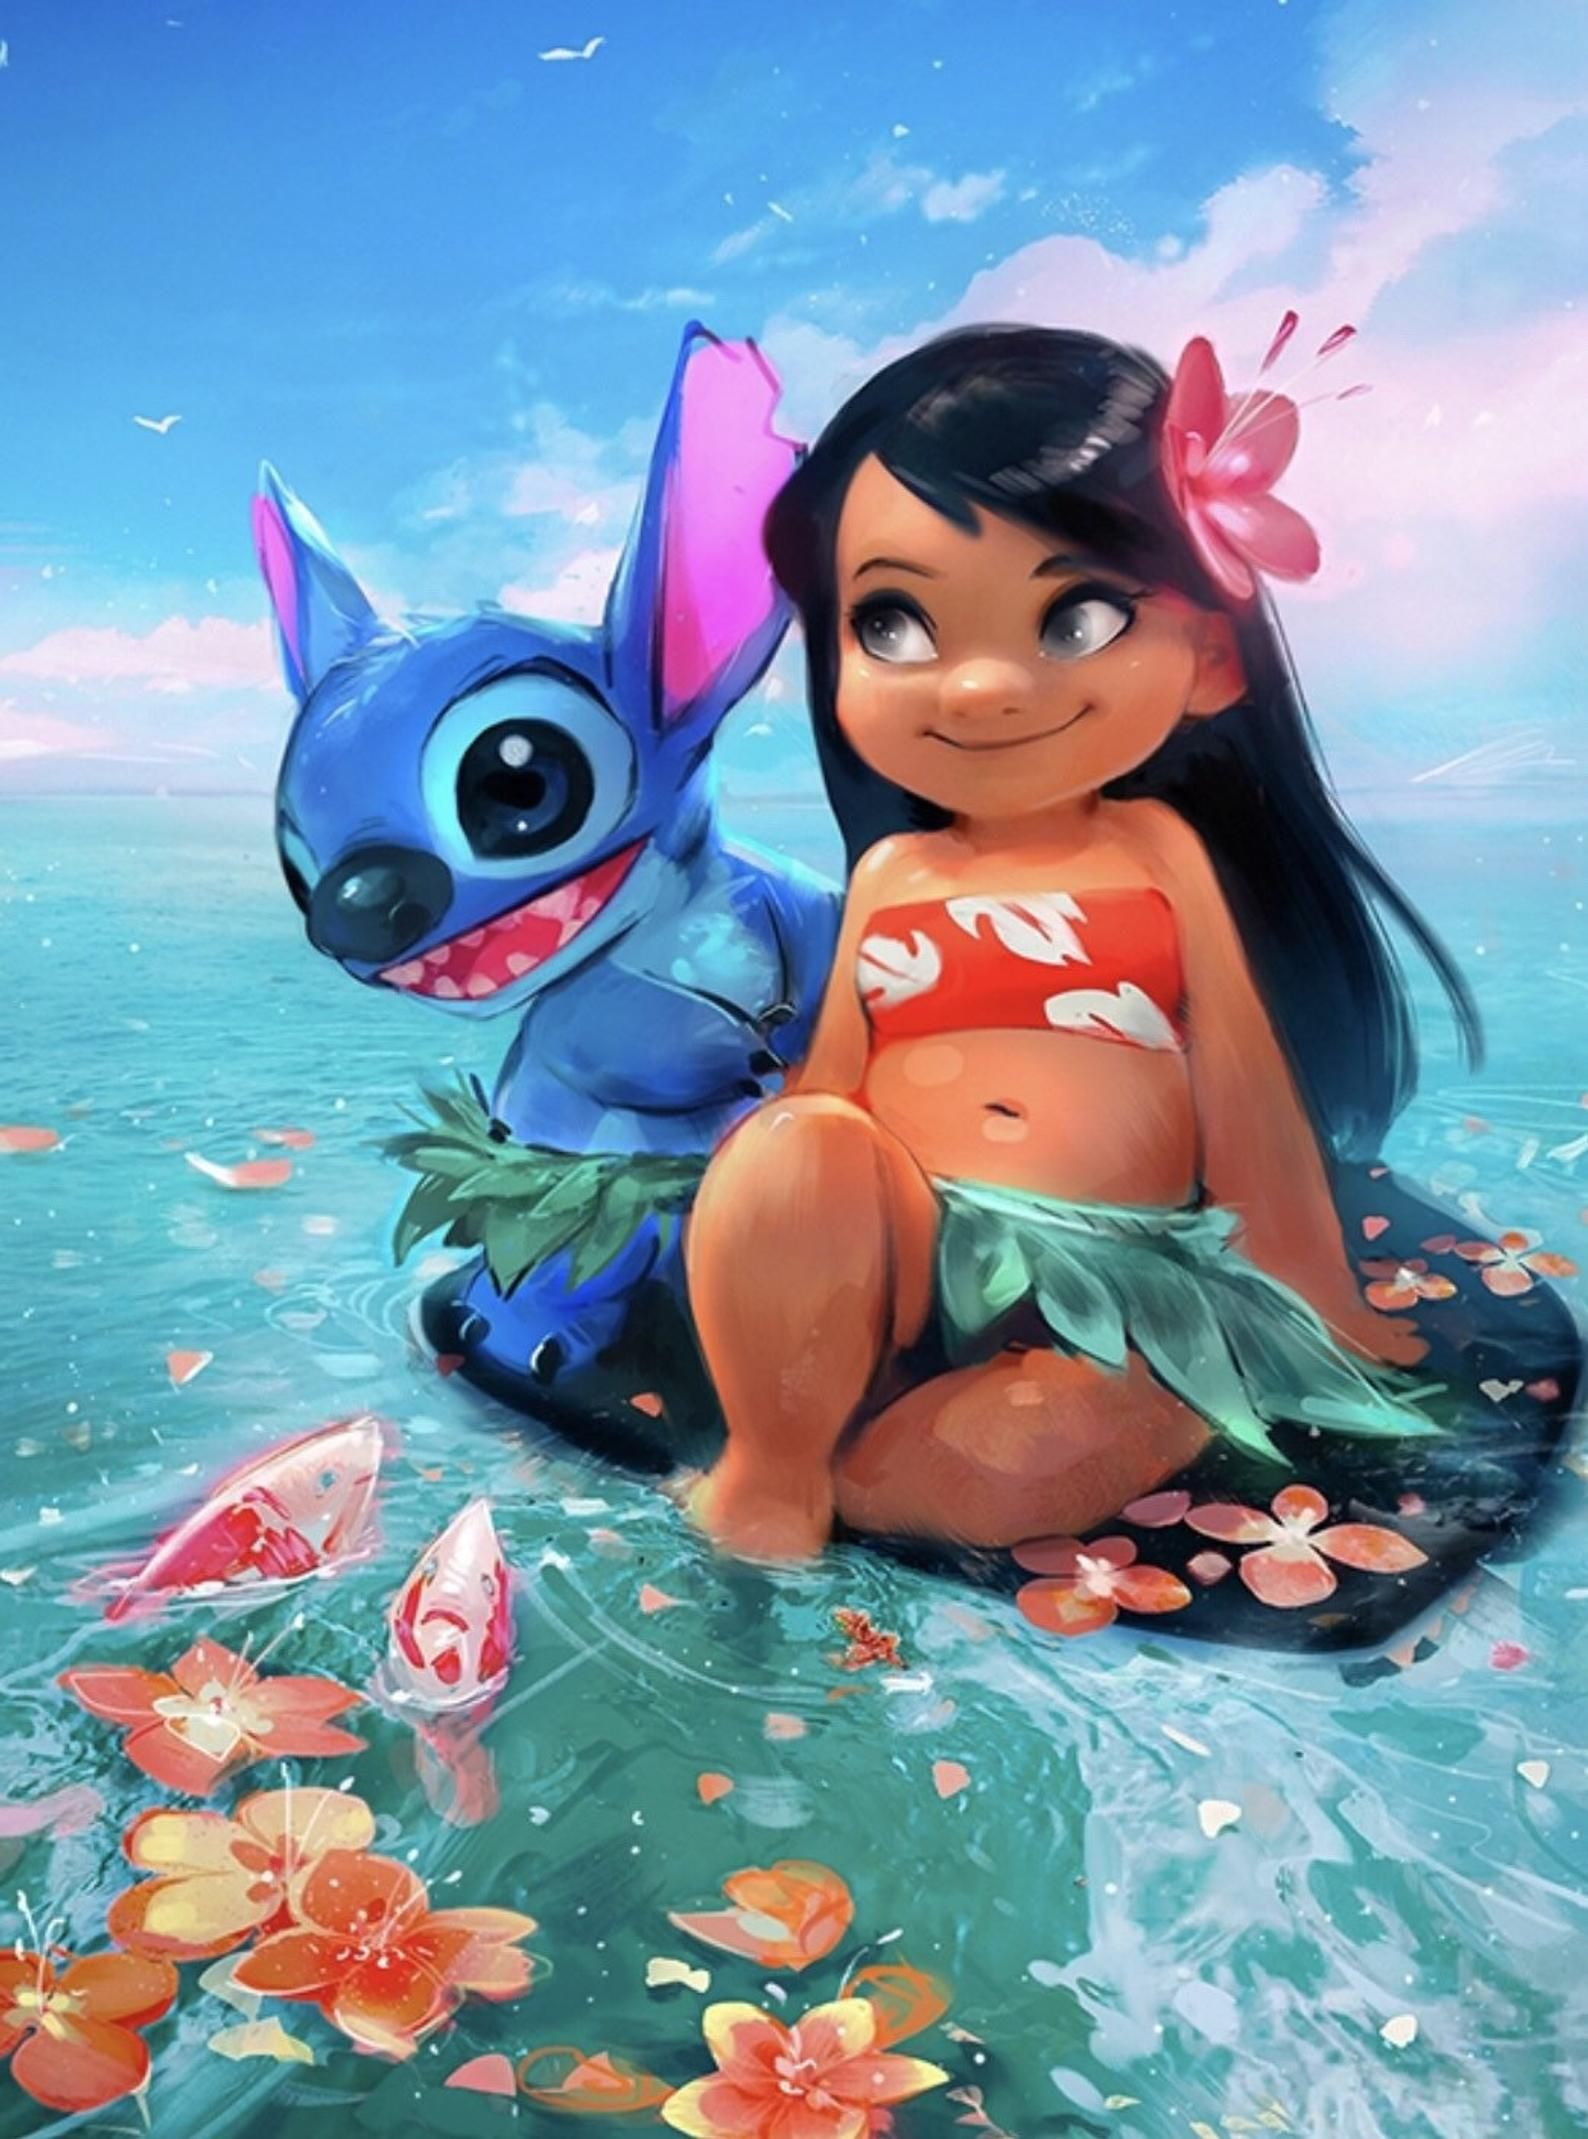 Lilo And Stitche Costume Lilo Stitche Outfit Halloween Costume 2018 Kids Pool Party Kids Birthday Disney Collage Disney Drawings Lilo And Stitch Drawings